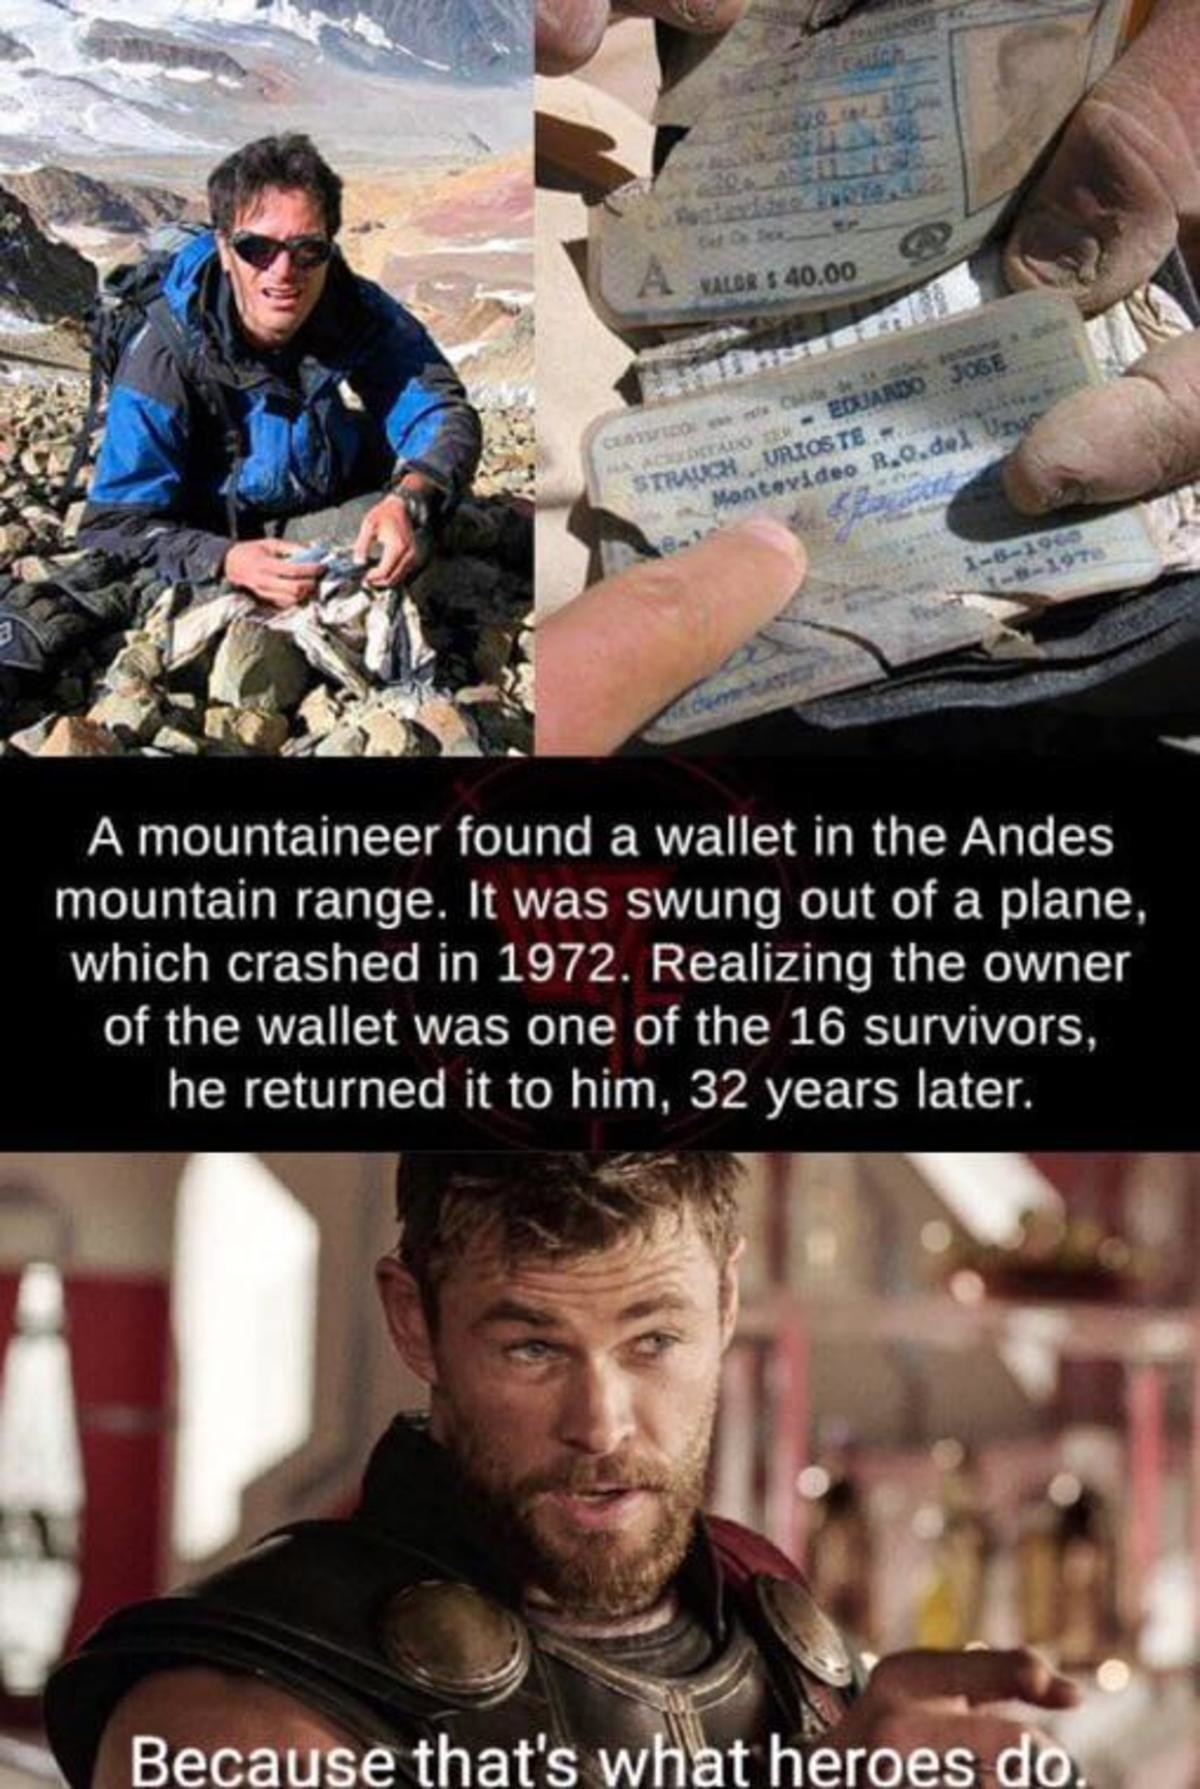 What heroes do. .. Why he waited 32-years before returning it. Weird.